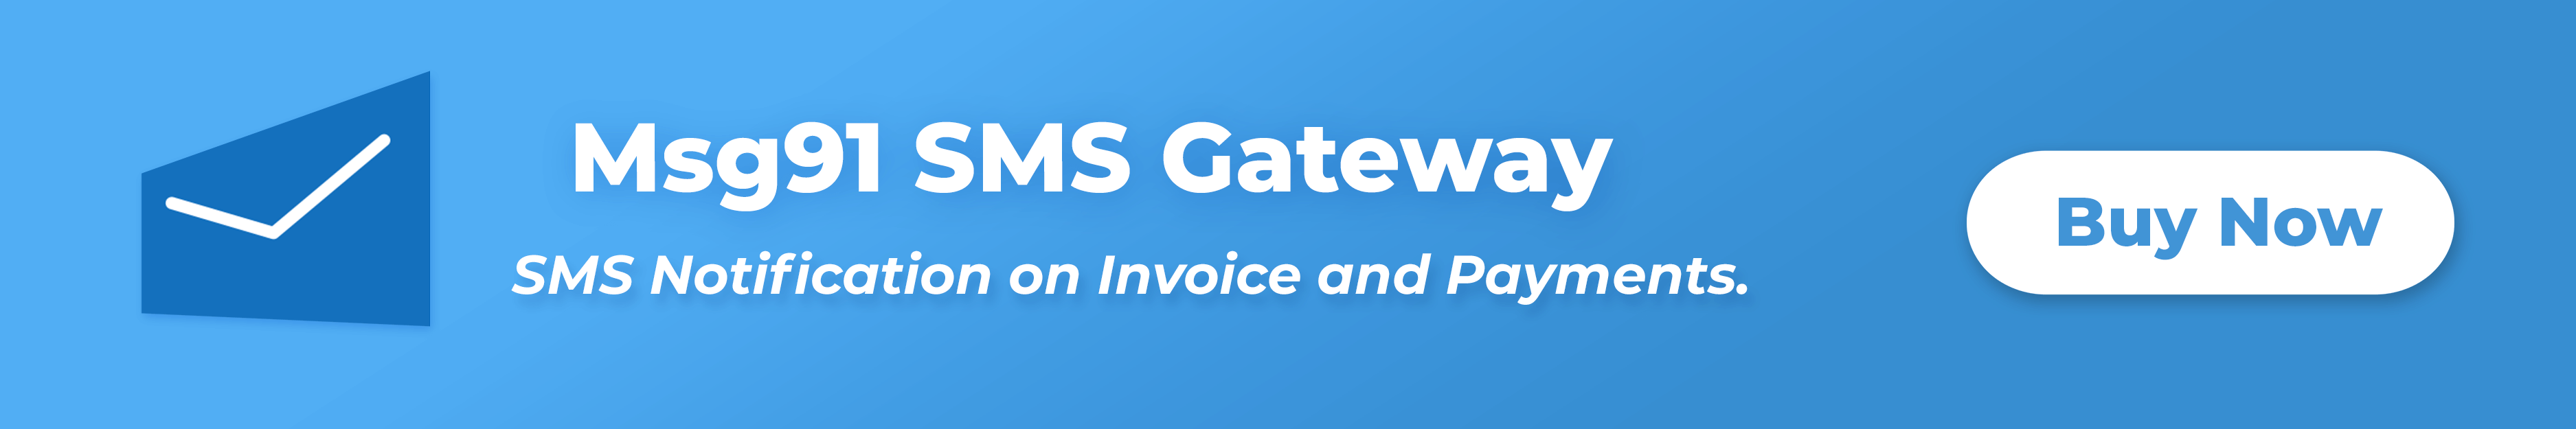 msg91 sms gateway integration